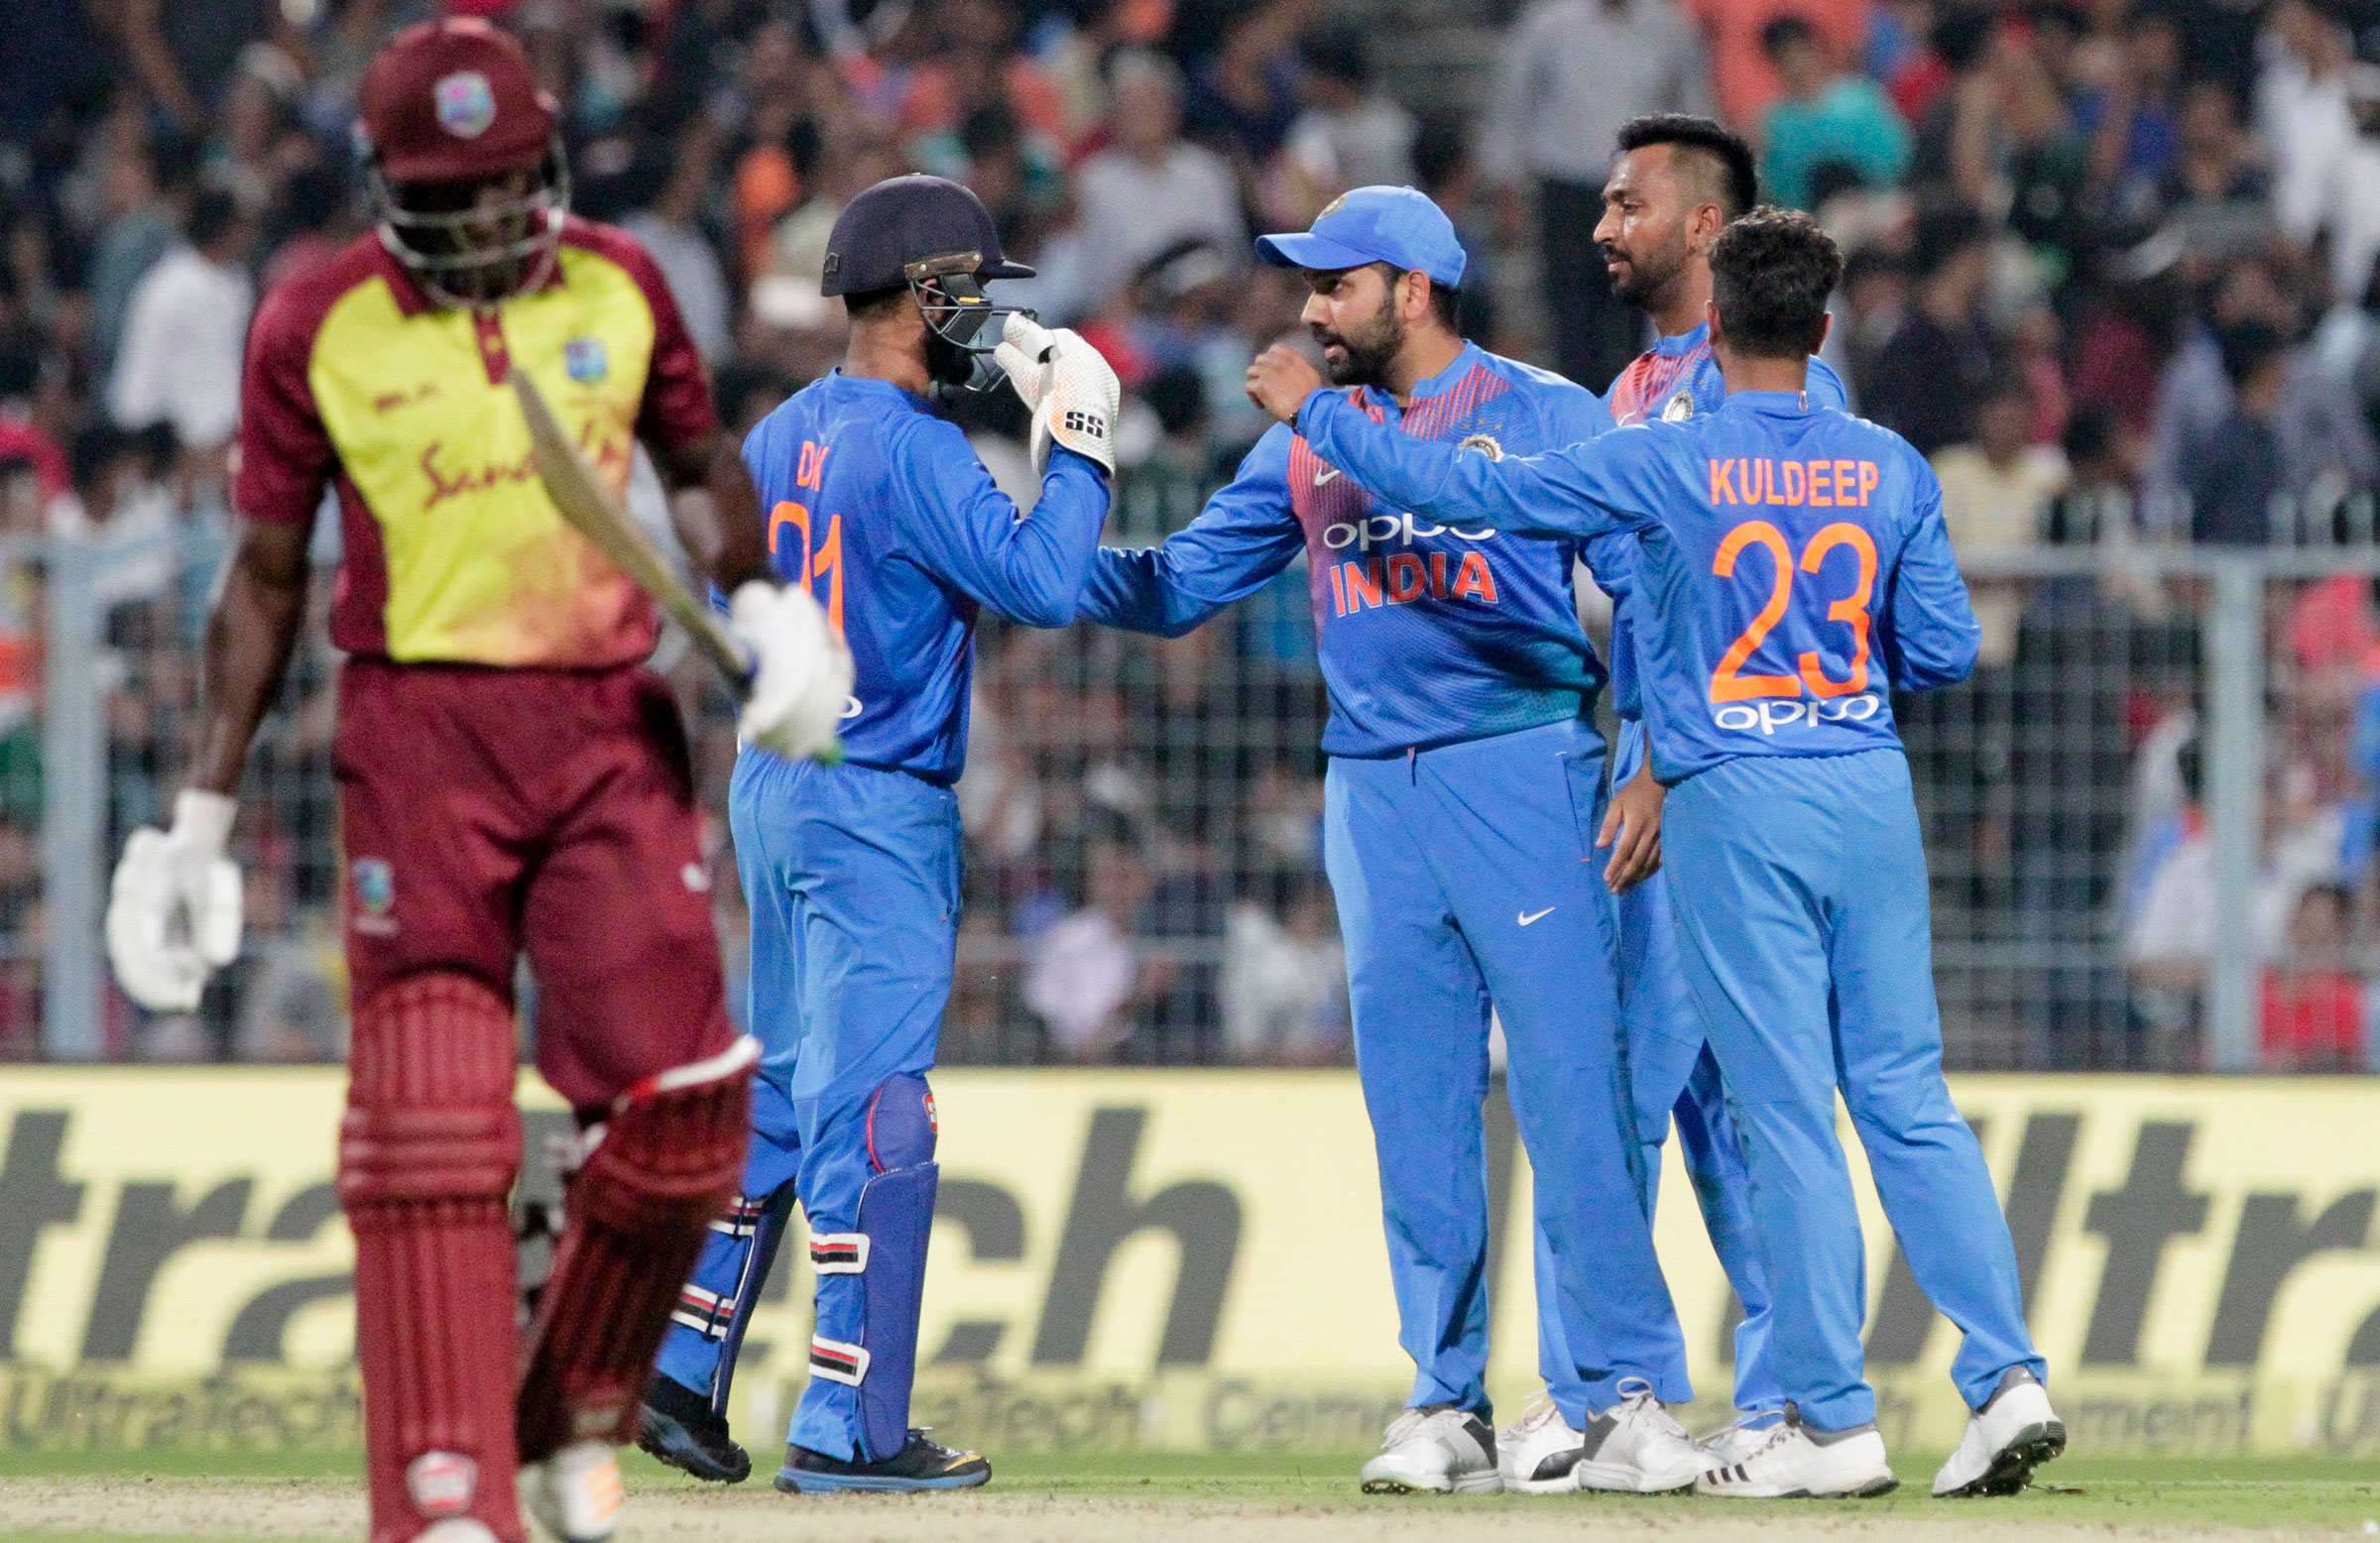 Man of the Match Kuldeep Yadav picked 3 wickets in the first T20I against West Indies (photo - getty)